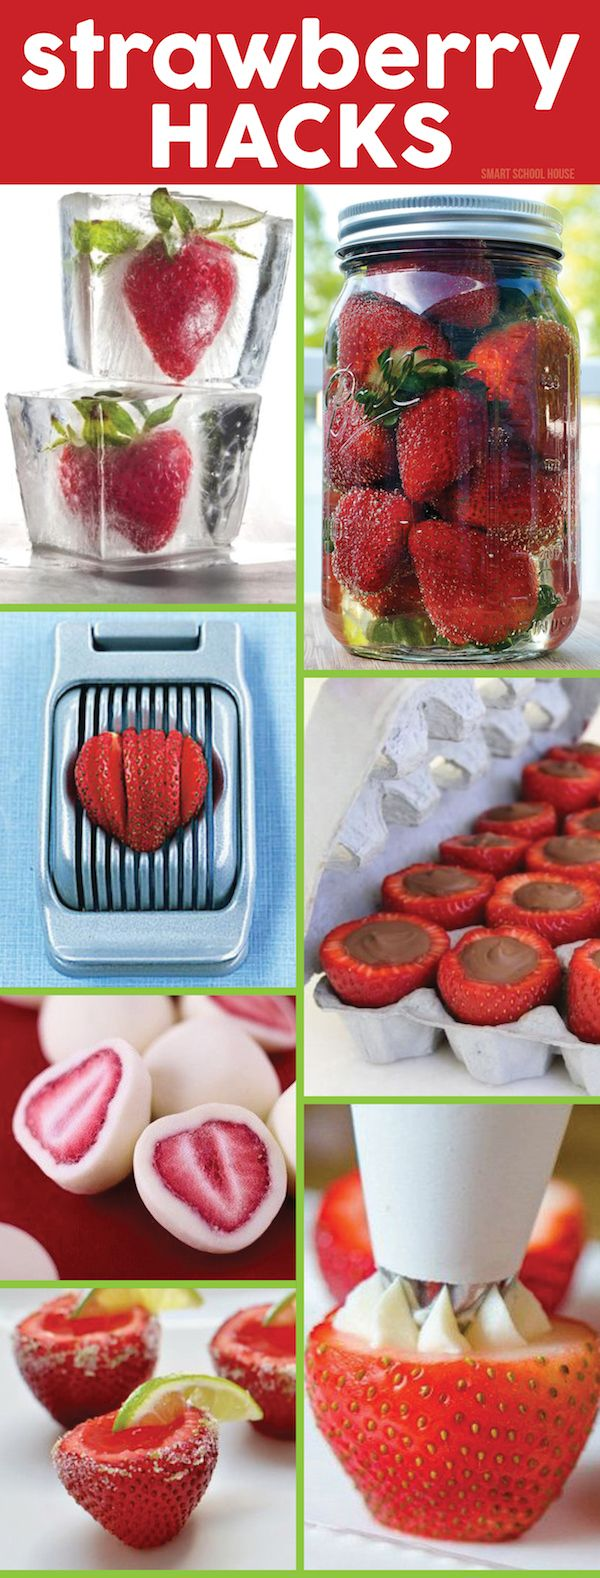 Strawberry Hacks - Genius recipe ideas and kitchen tips for this seasonal fruit.